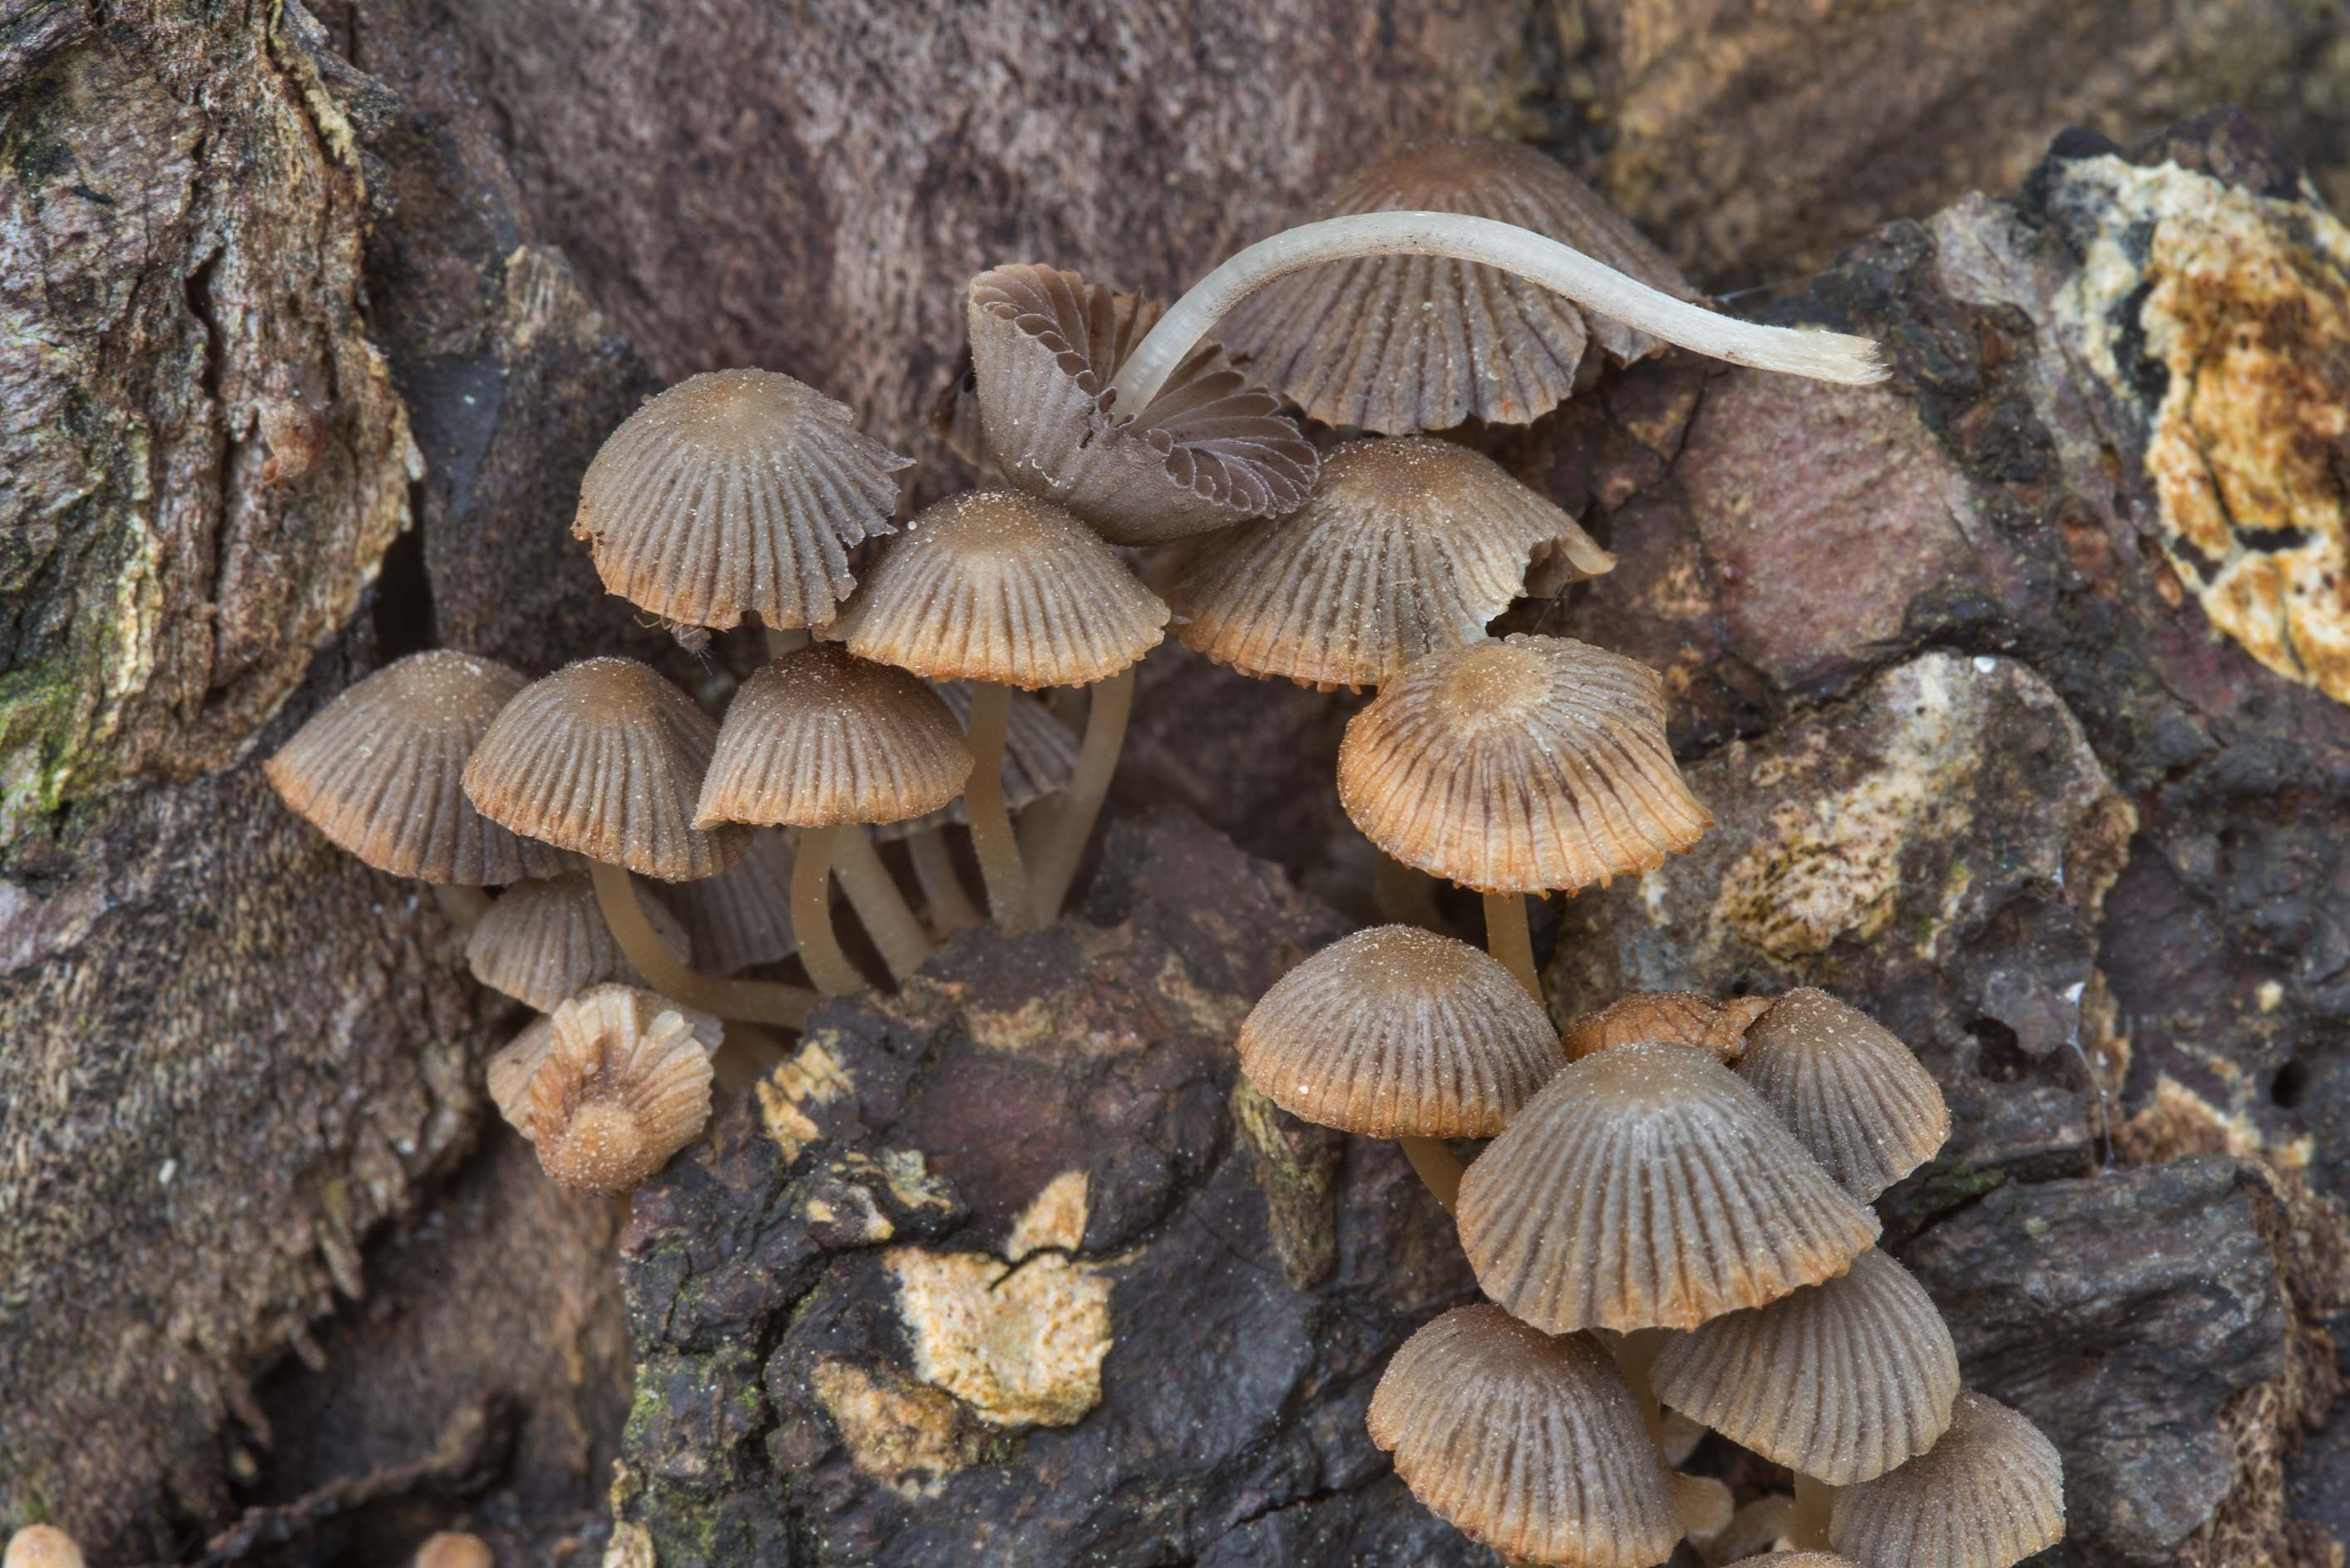 Fairy Bonnet mushrooms (Coprinellus disseminatus...Pen Creek Park. College Station, Texas